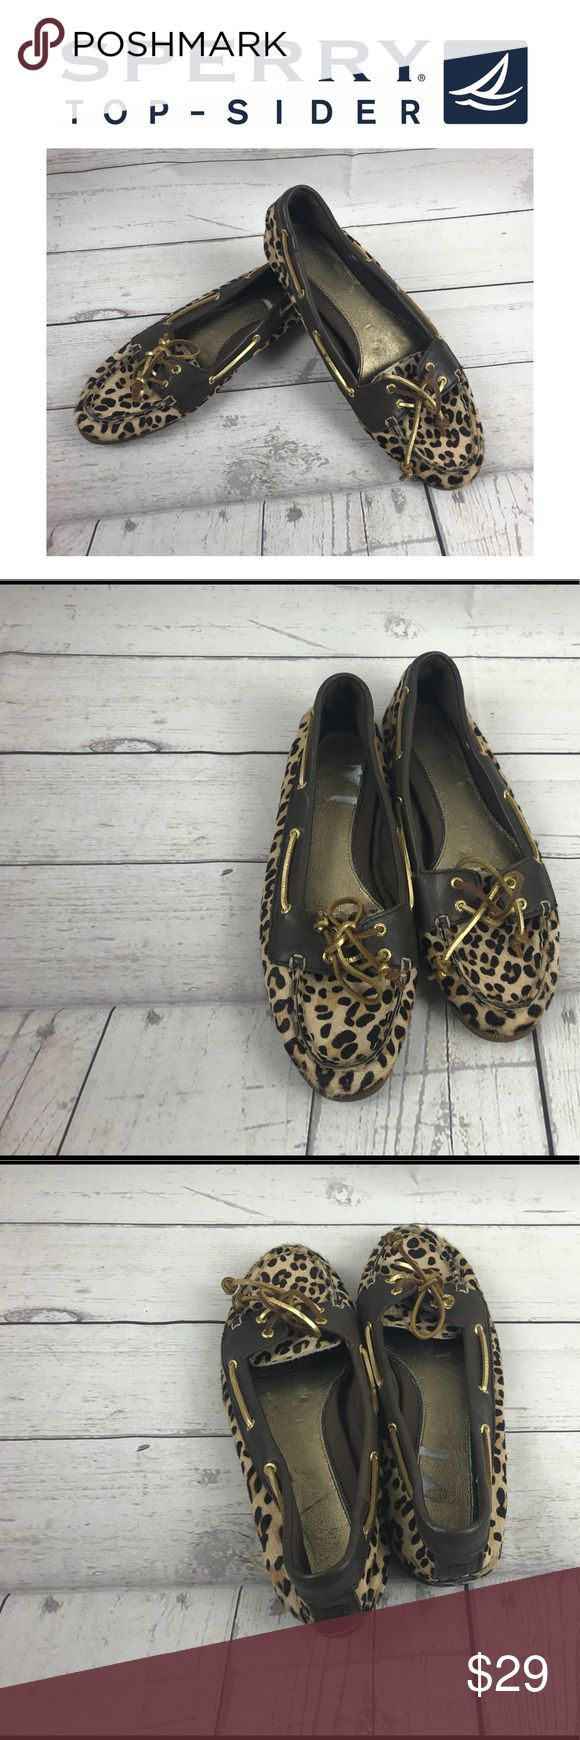 Sherry Top Sider Animal Print Shoes.  Sz 9M Sherry Top Sider Animal Print Shoes.  Sz 9M. These shoes are in real good shape.. Sperry Top-Sider Shoes Flats & Loafers